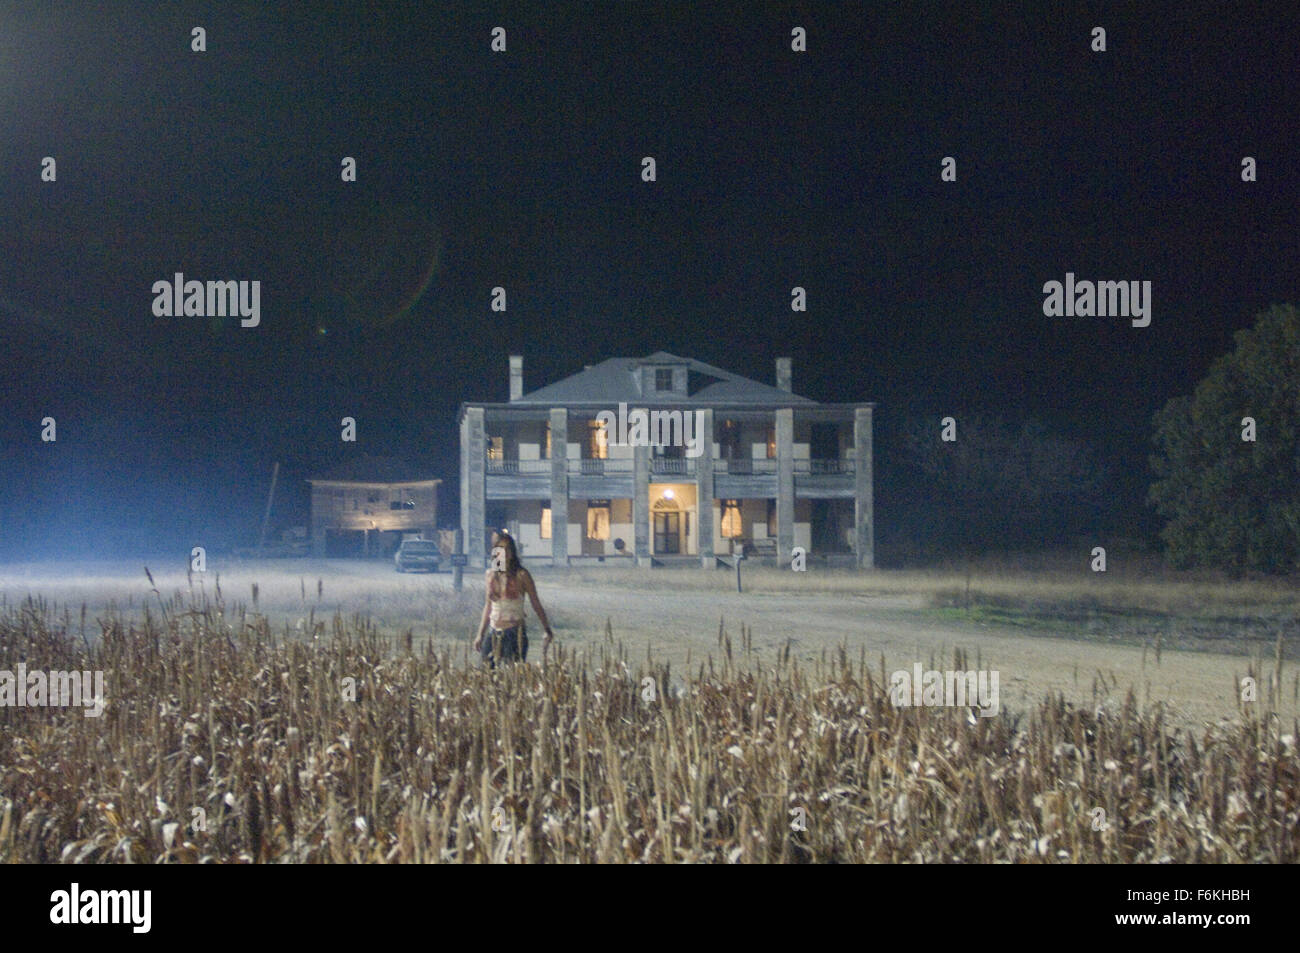 RELEASE DATE: October 6, 2006. MOVIE TITLE: The Texas Chainsaw Massacre: The Beginning. STUDIO: New Line Cinema. - Stock Image